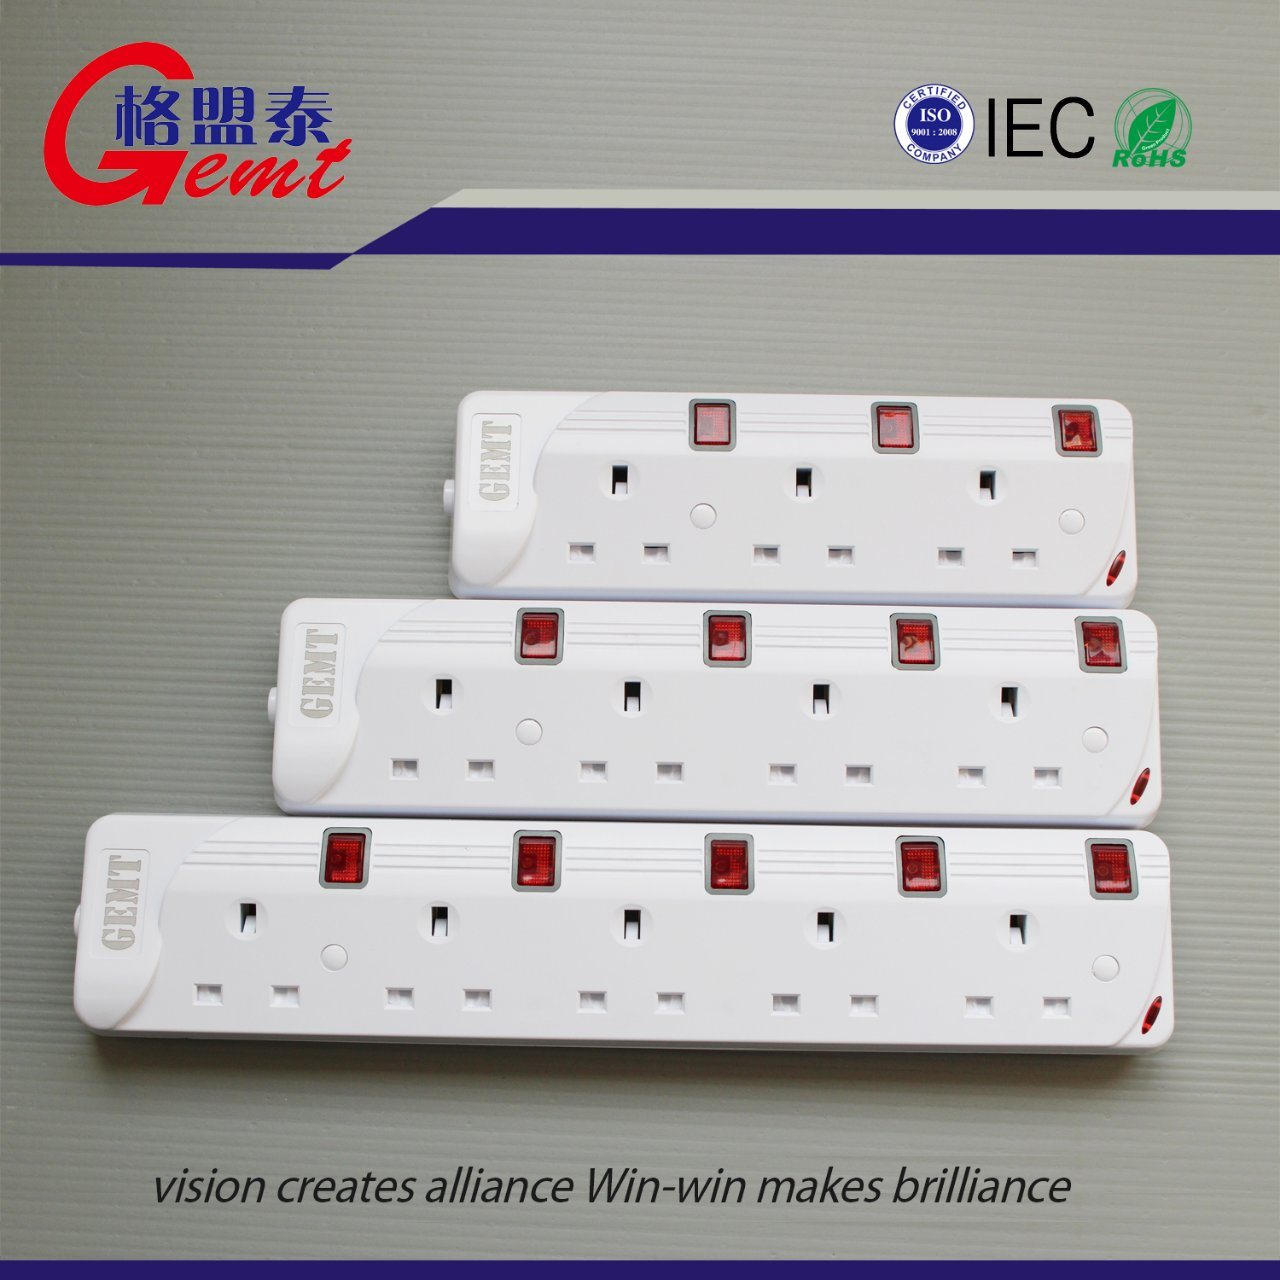 China Hot Sale 345 Way Electronic Plug Power Strips 4 Switch For Supply Strip